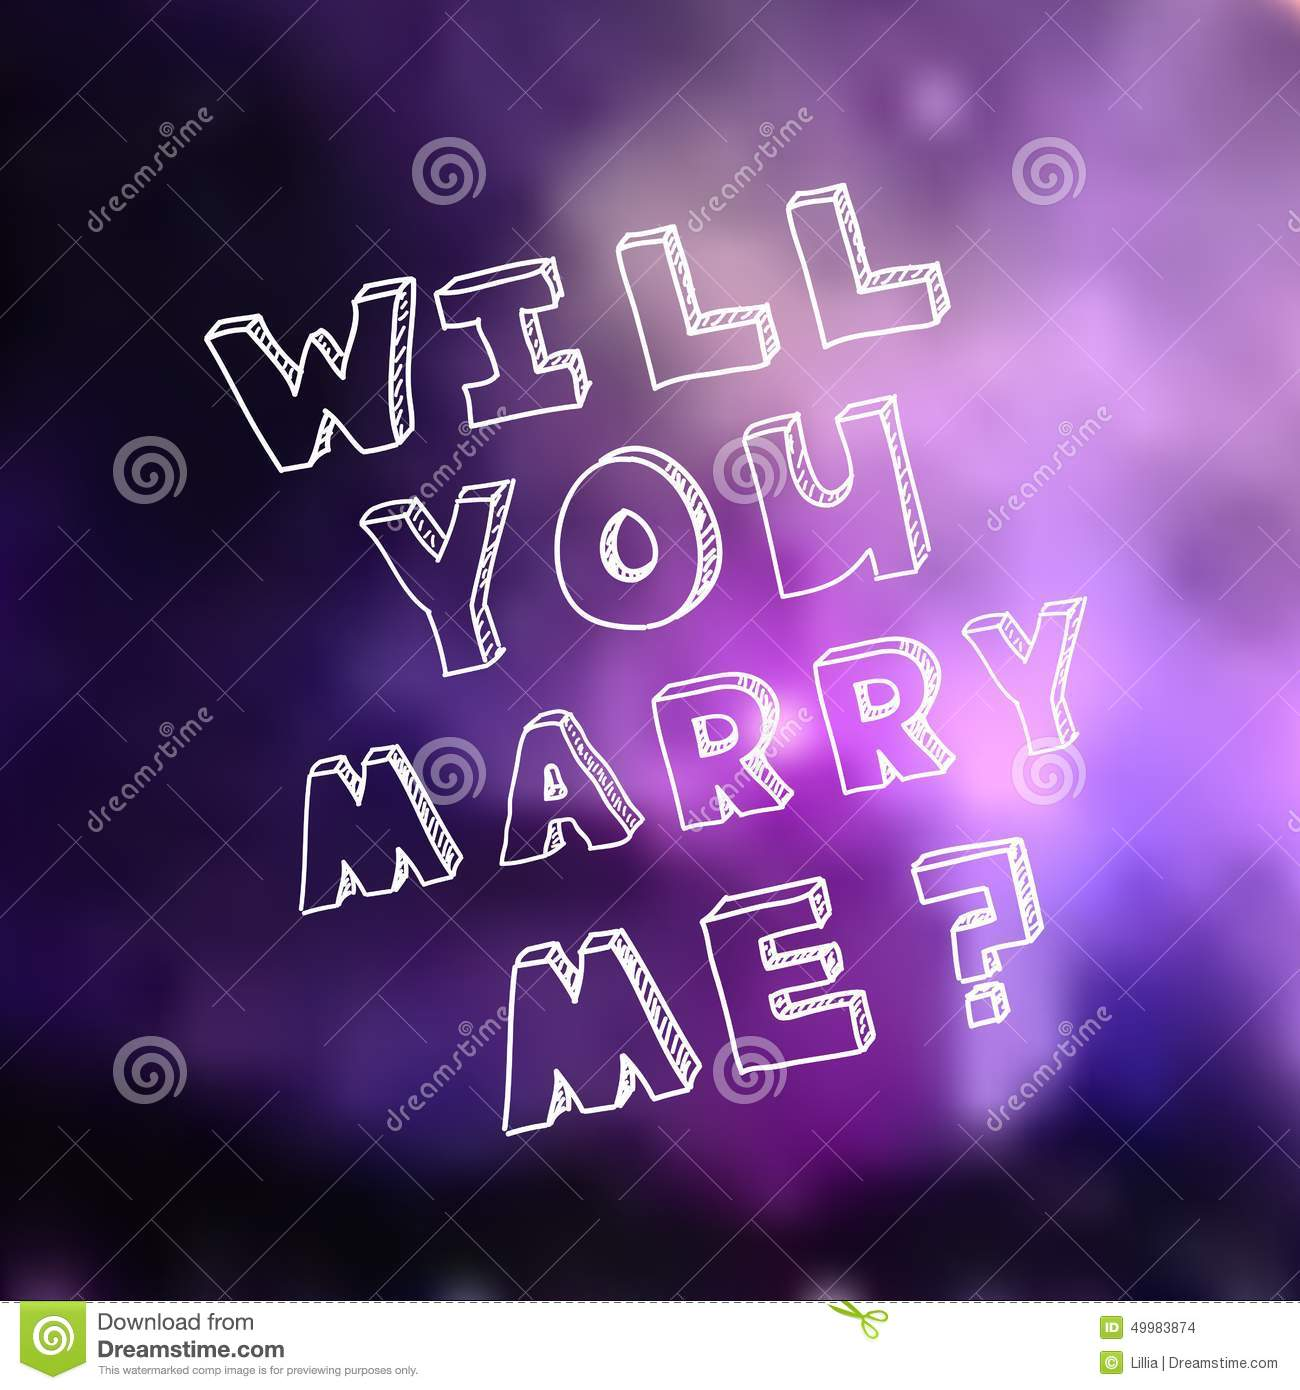 Poster Template For Marriage Proposal Design Stock Vector ...